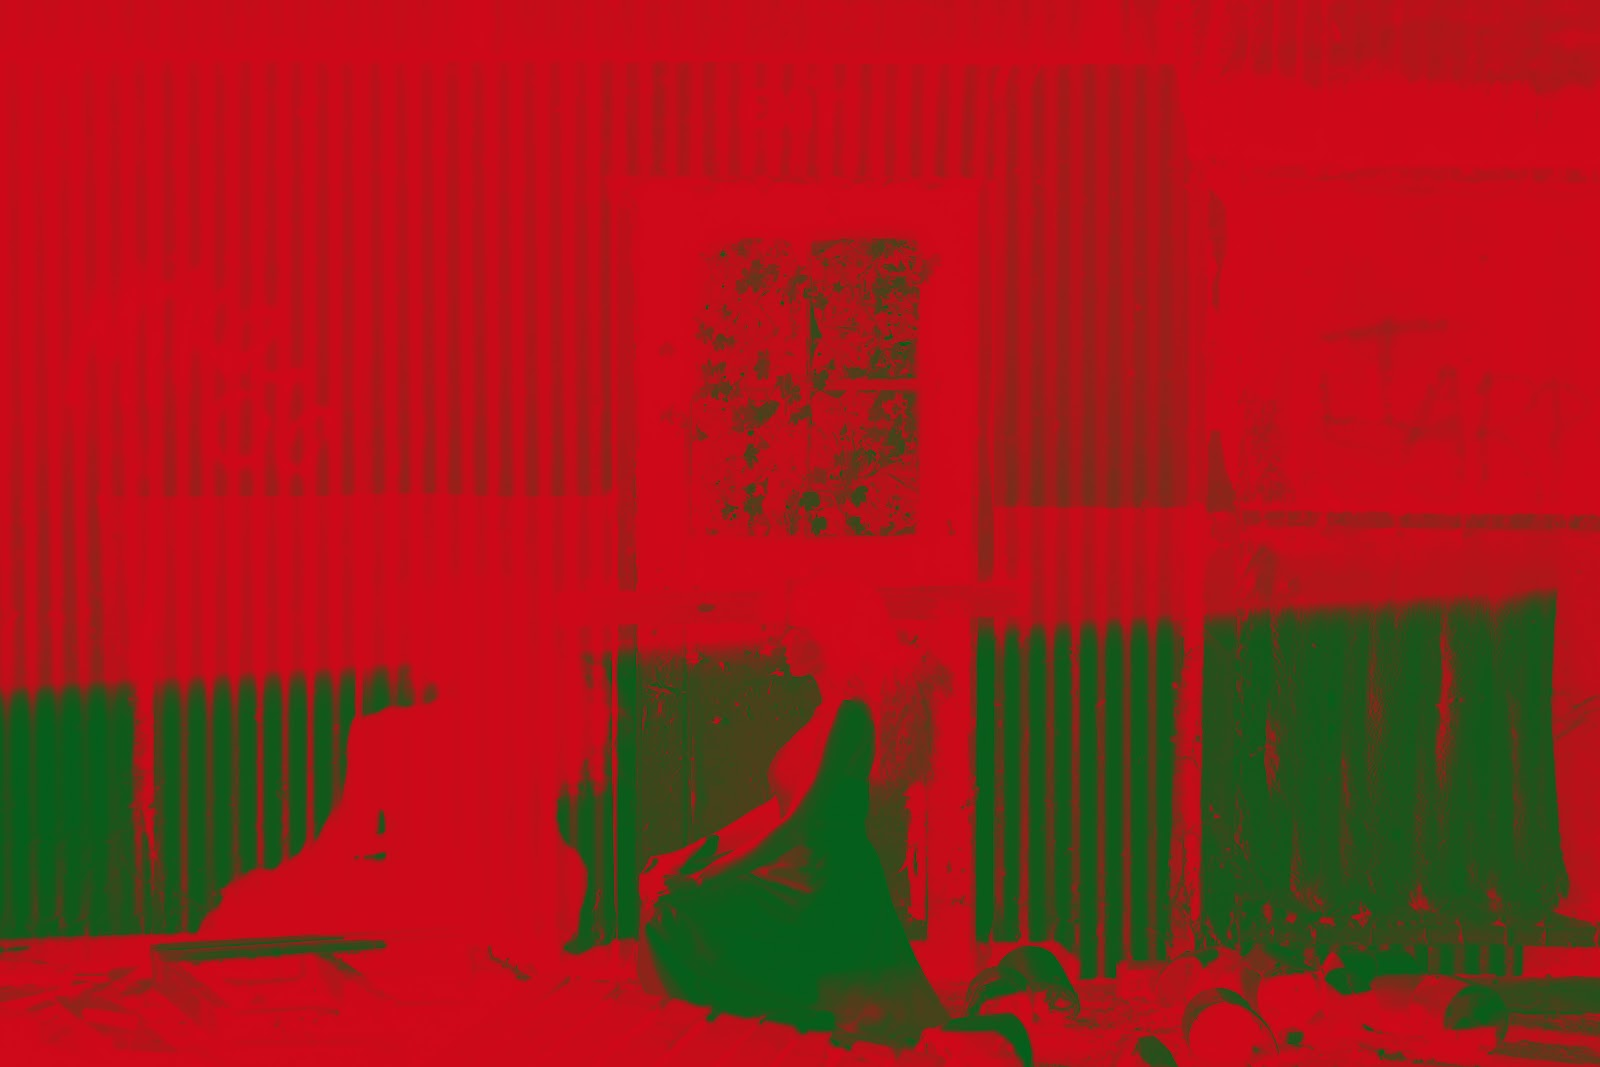 Original photo with red to green gradient map applied. The red replaced shadows and the green replaced highlights.